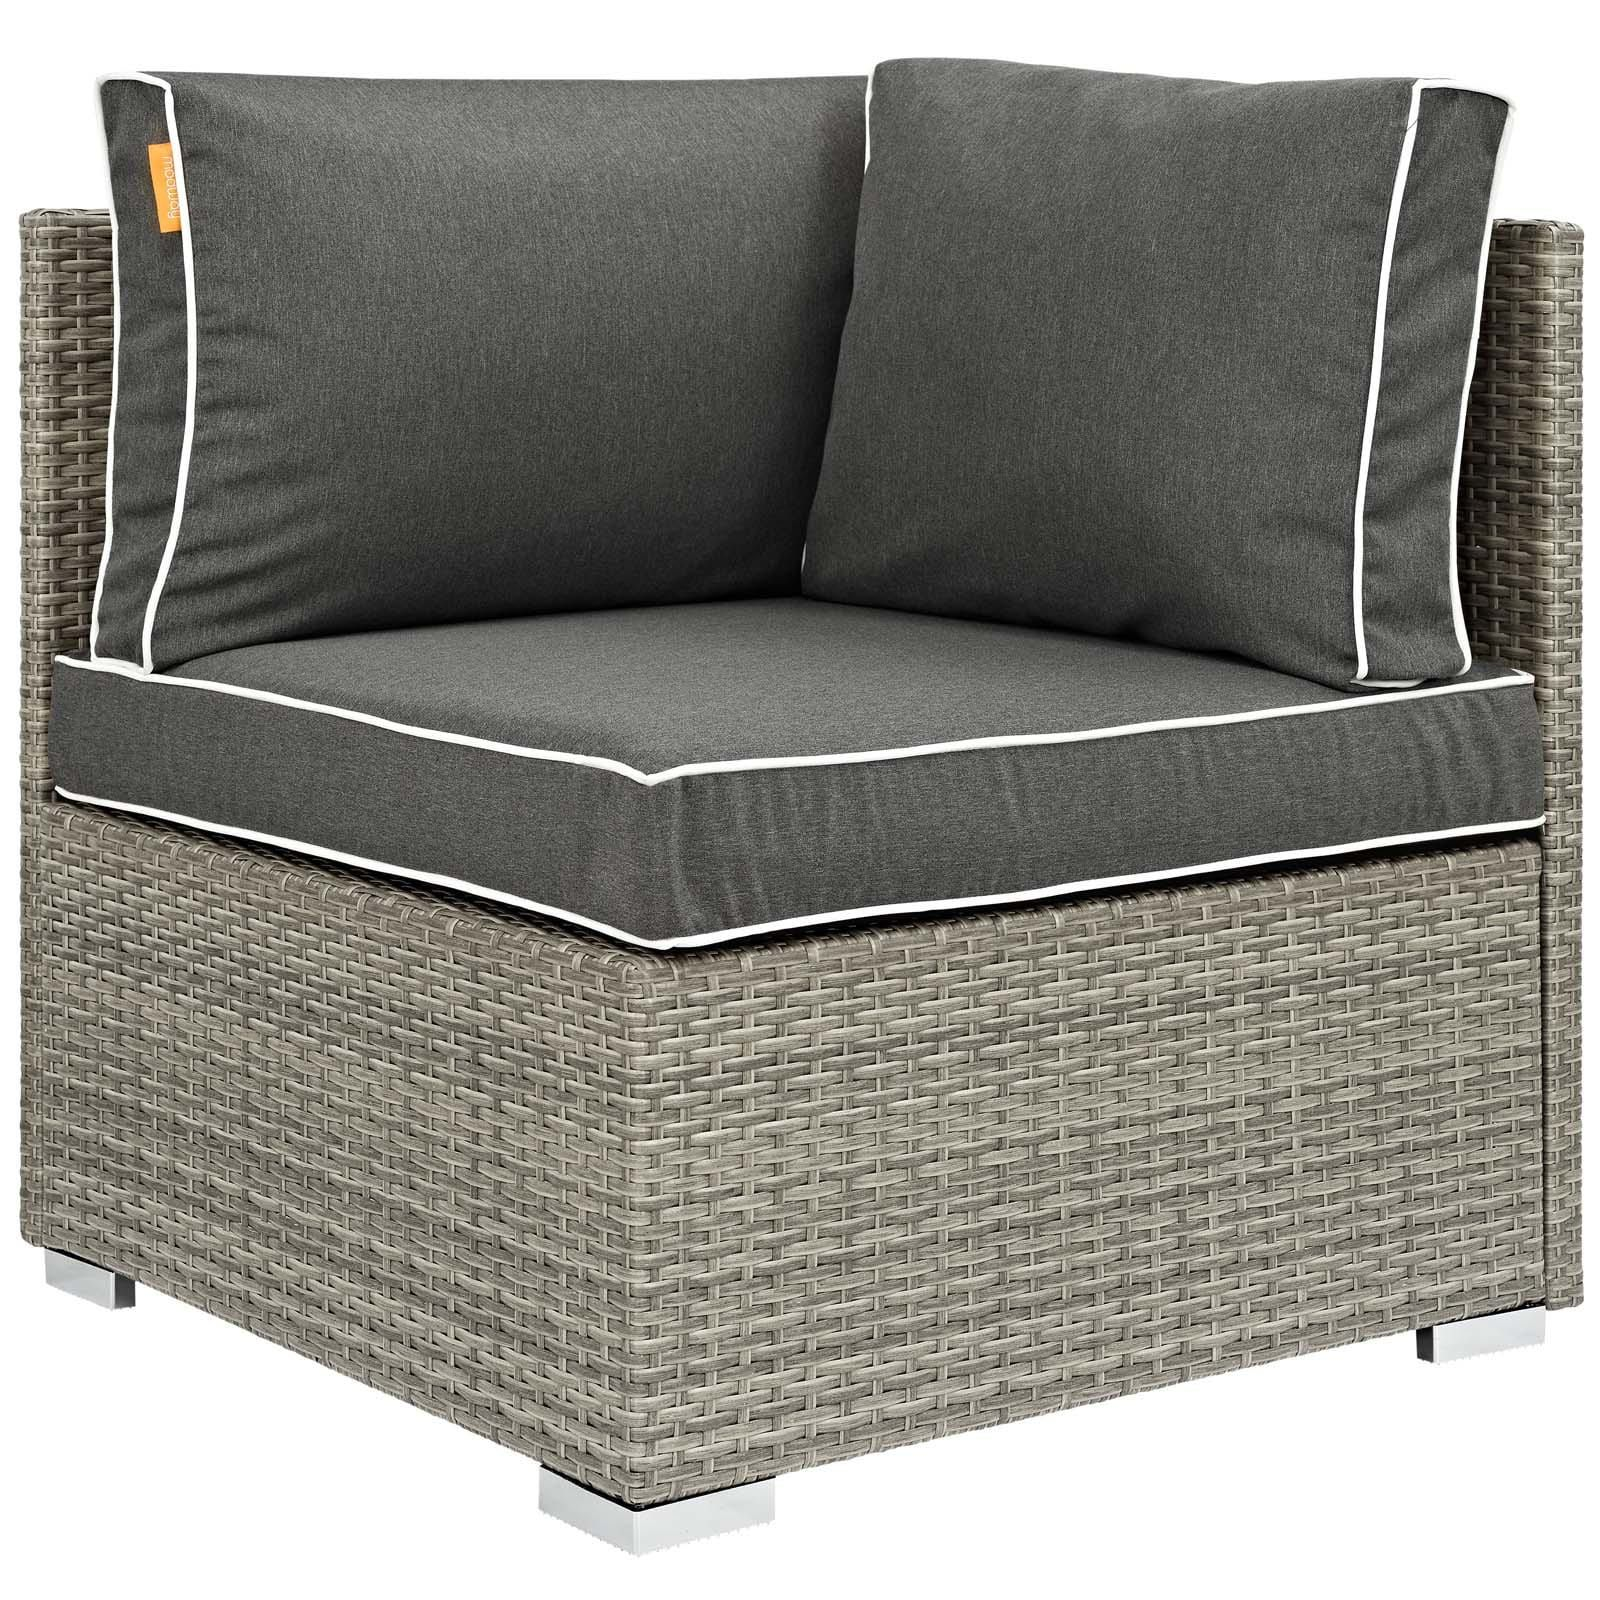 Modway Repose Outdoor Patio Corner Chair Patio Chairs Modway